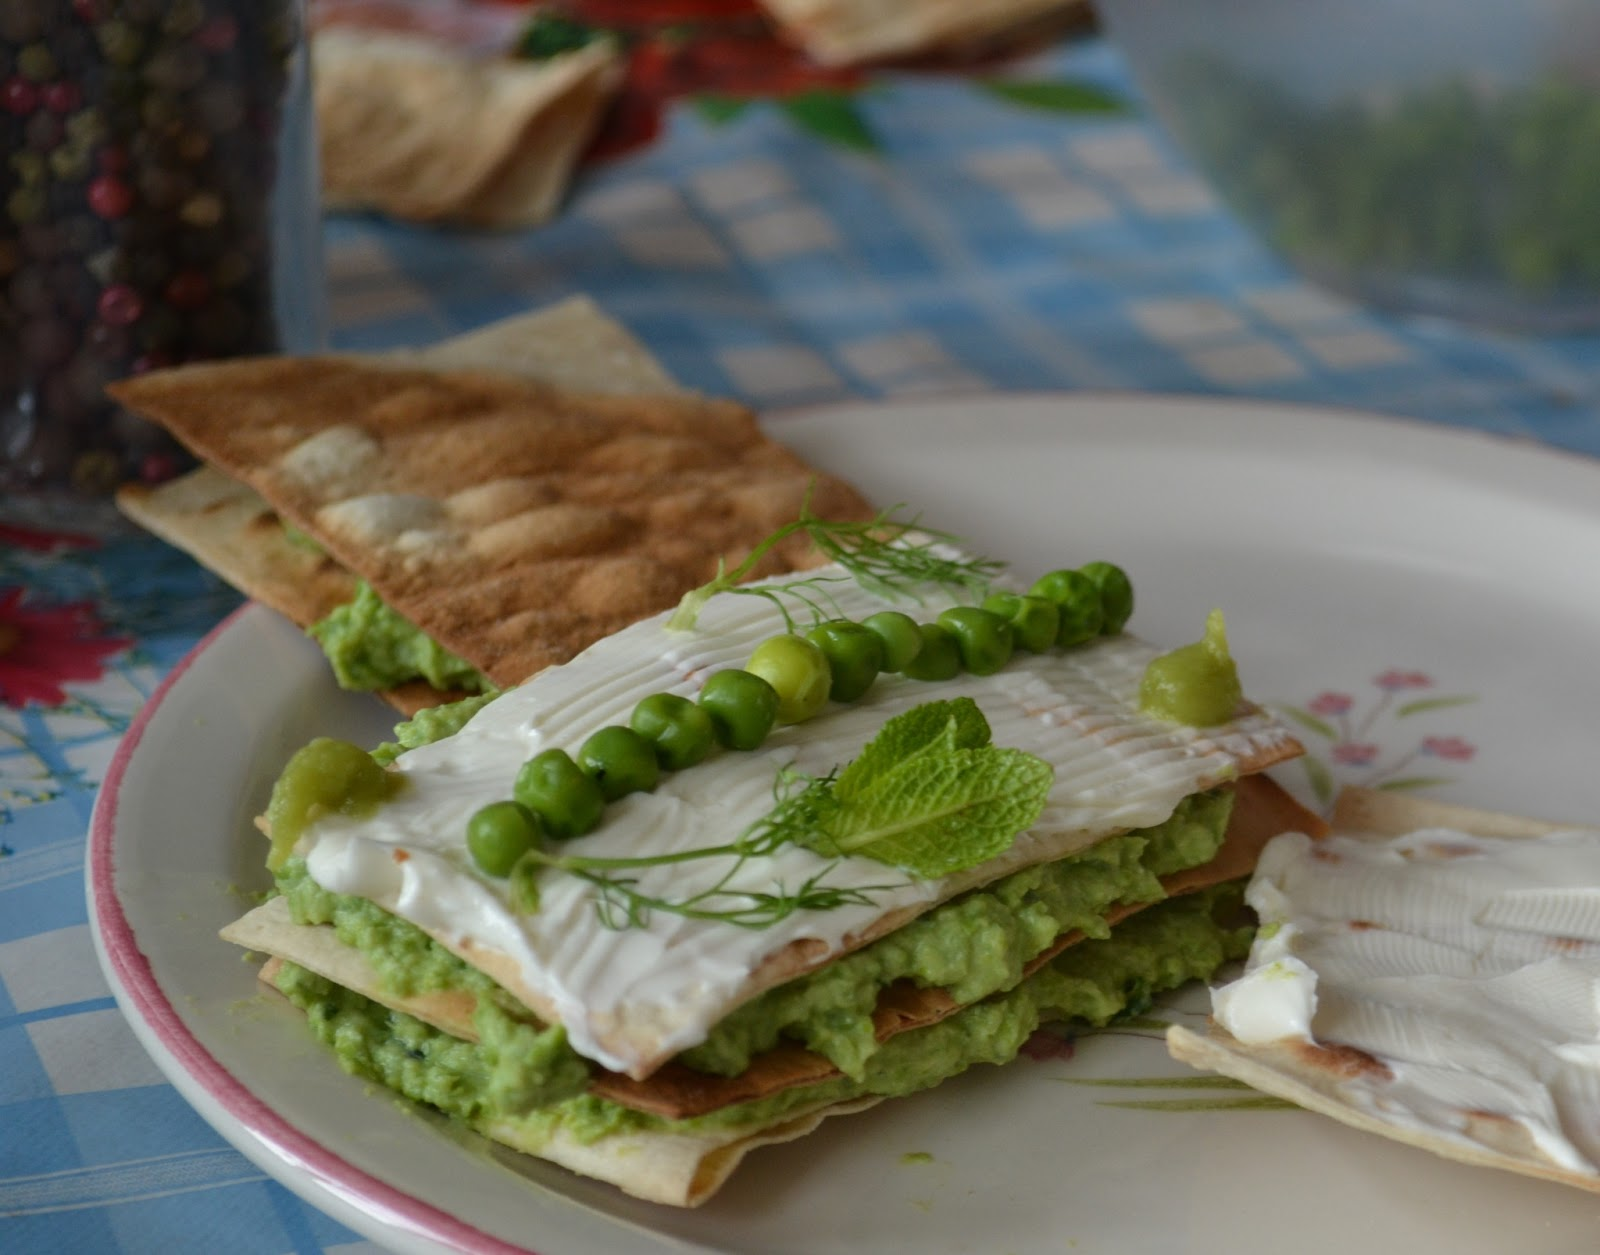 Millefeuille of ricotta, peas and mint